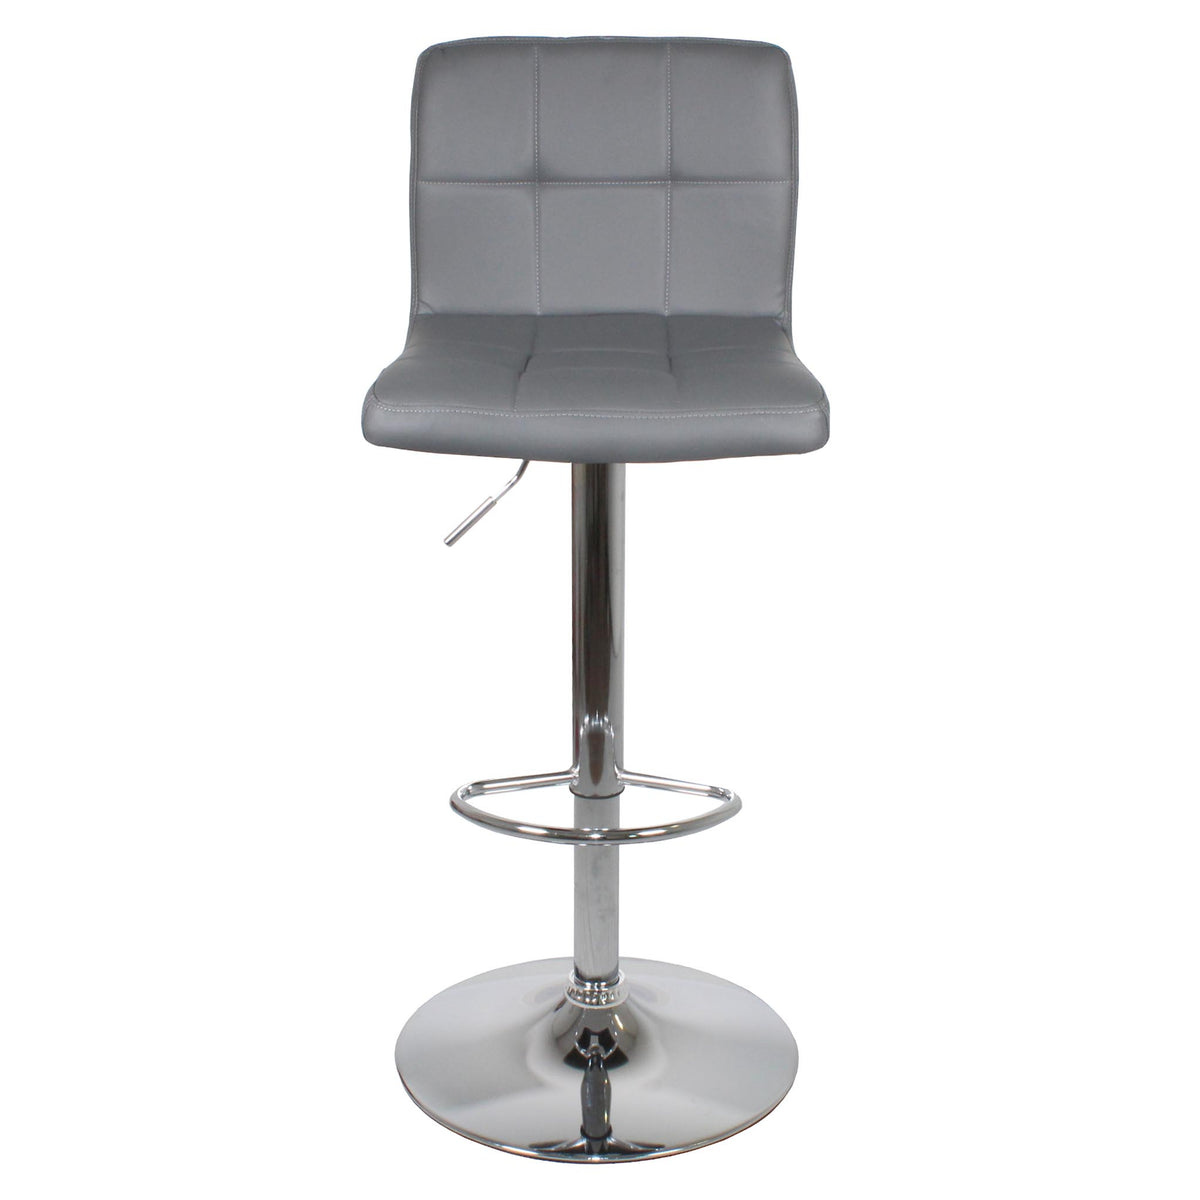 Front view of the Sky Grey Elton Adjustable Breakfast Bar Stool from Roseland Furniture